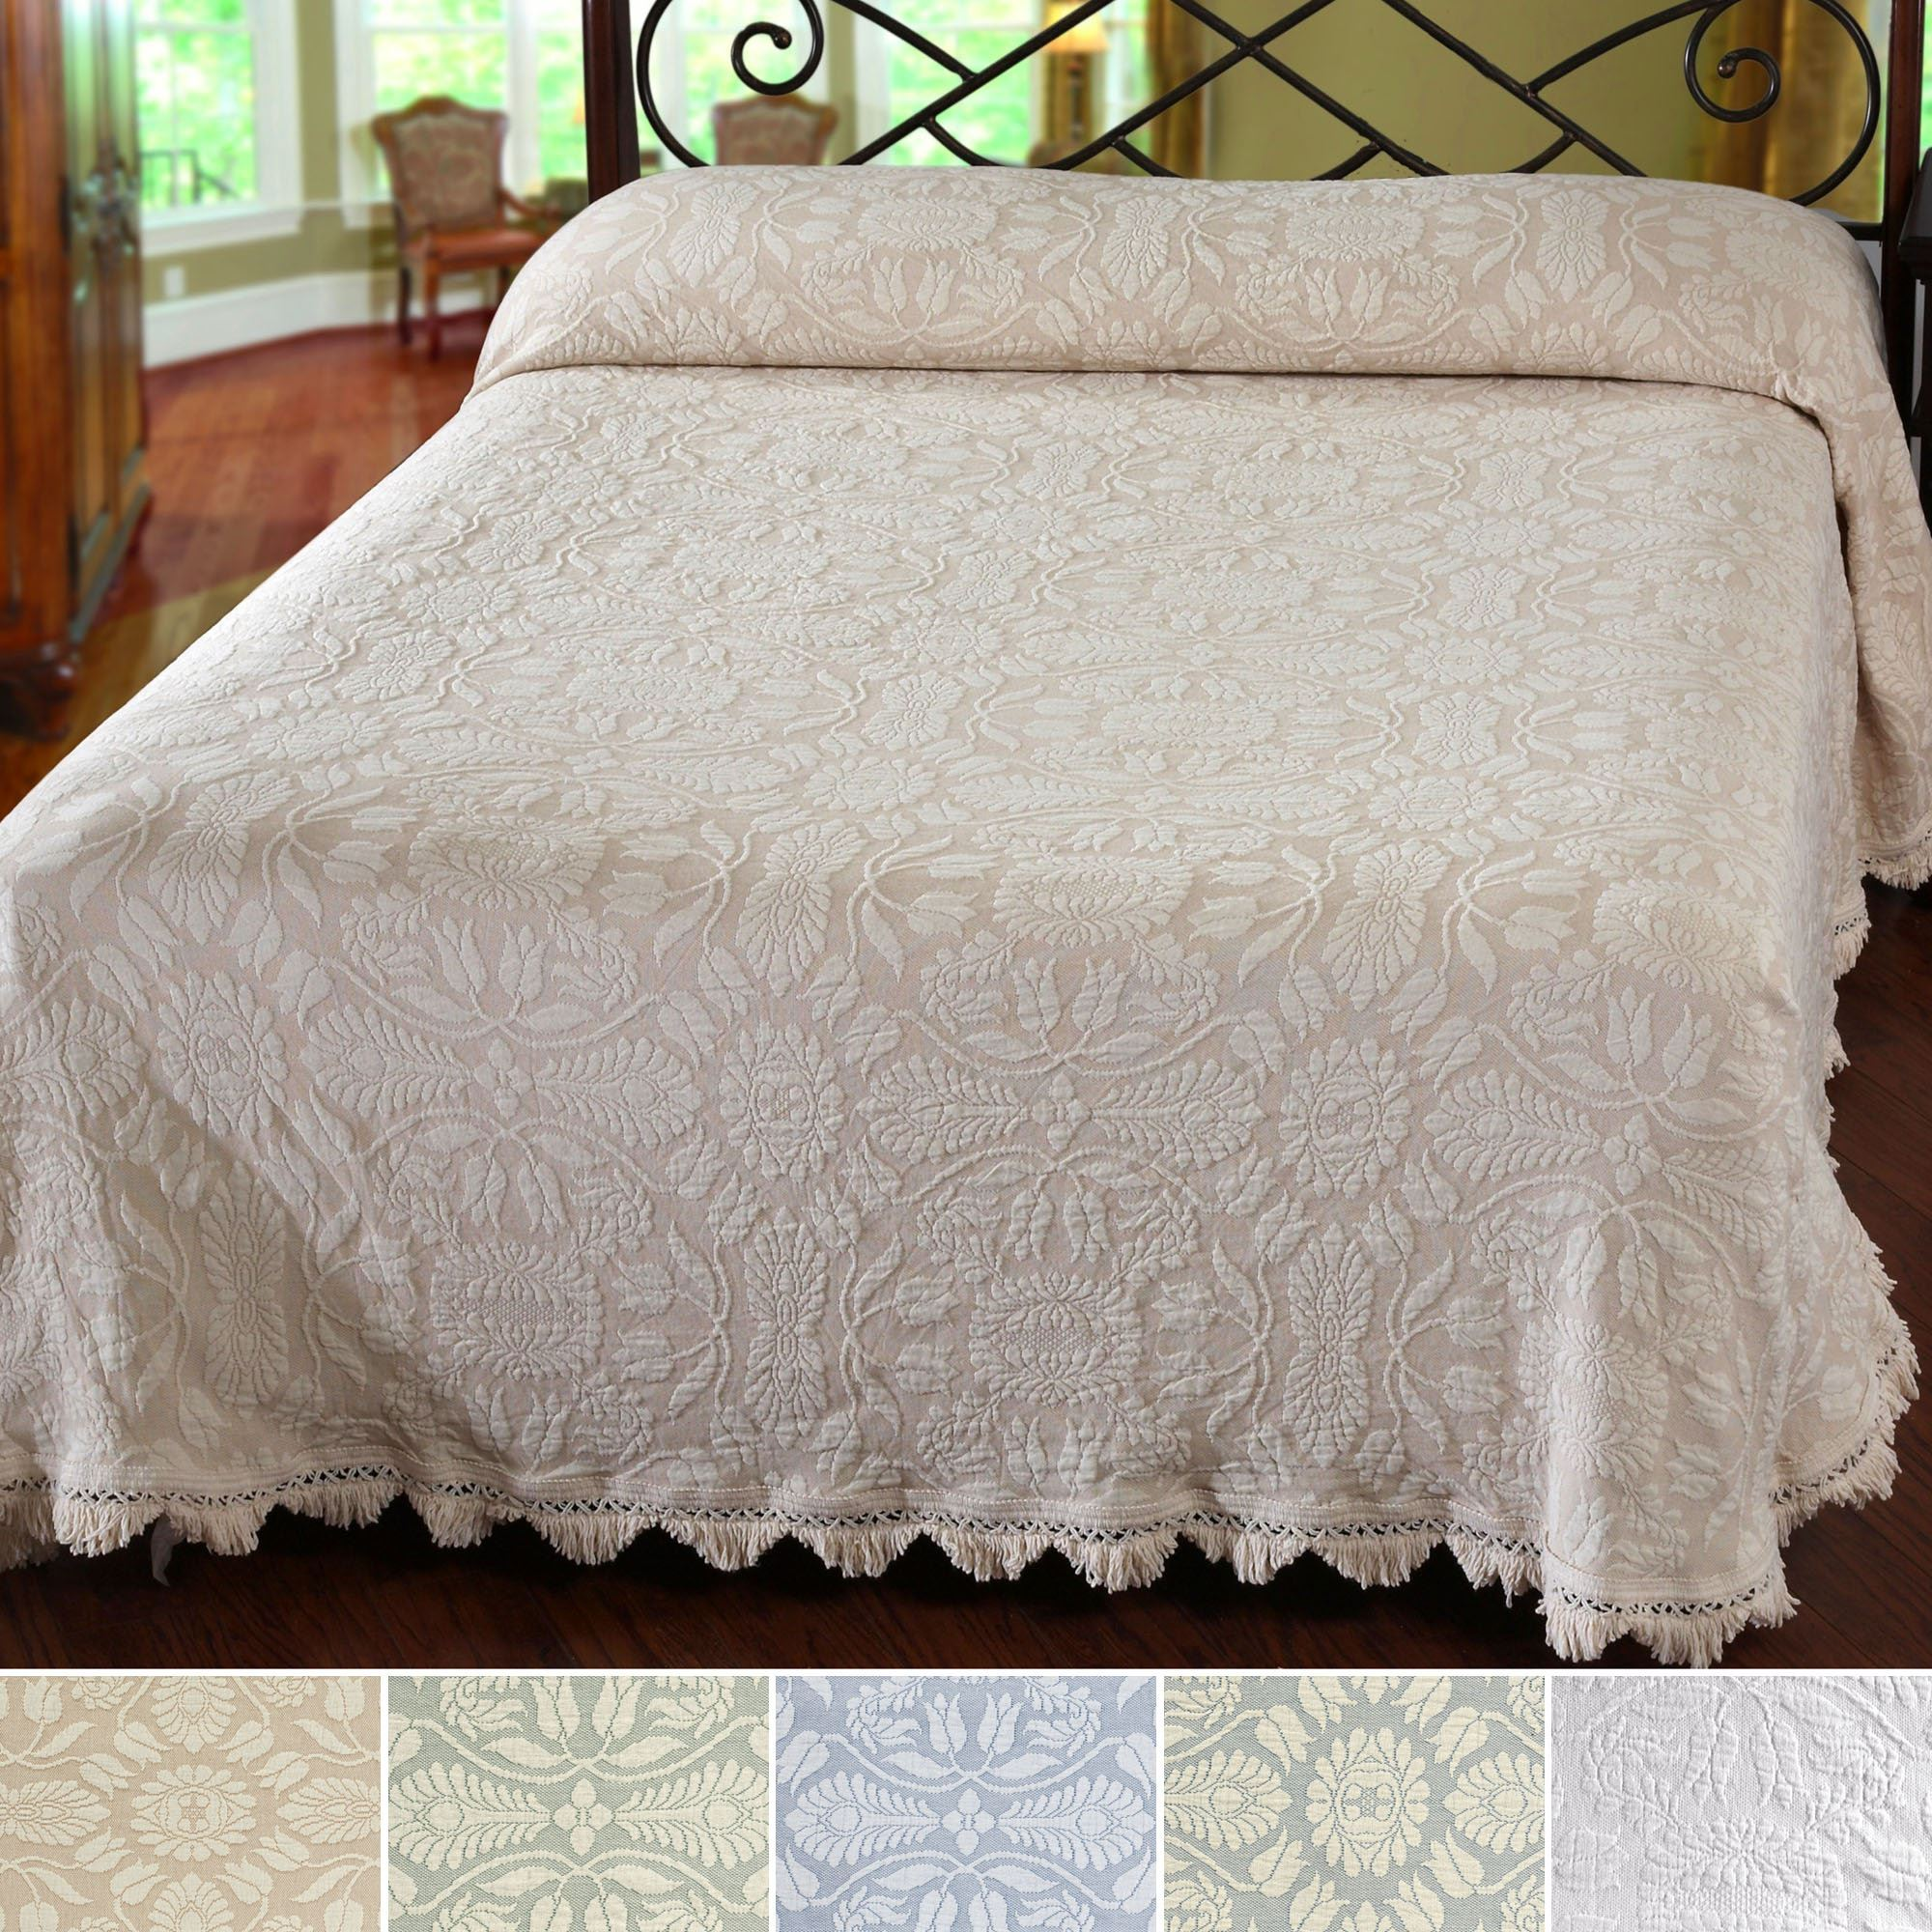 Colonial Rose Woven Matelasse Bedspread Bedding